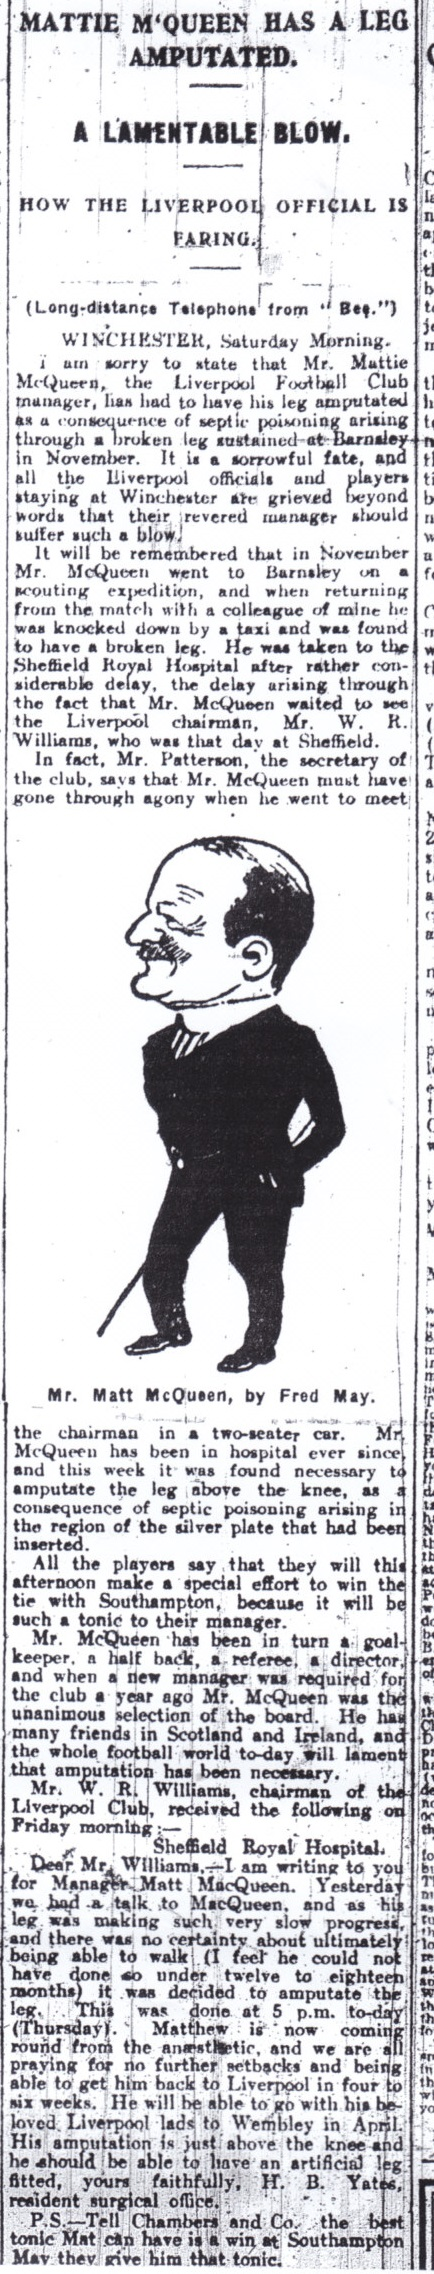 Matt McQueen'a leg amputated - 23 February 1924